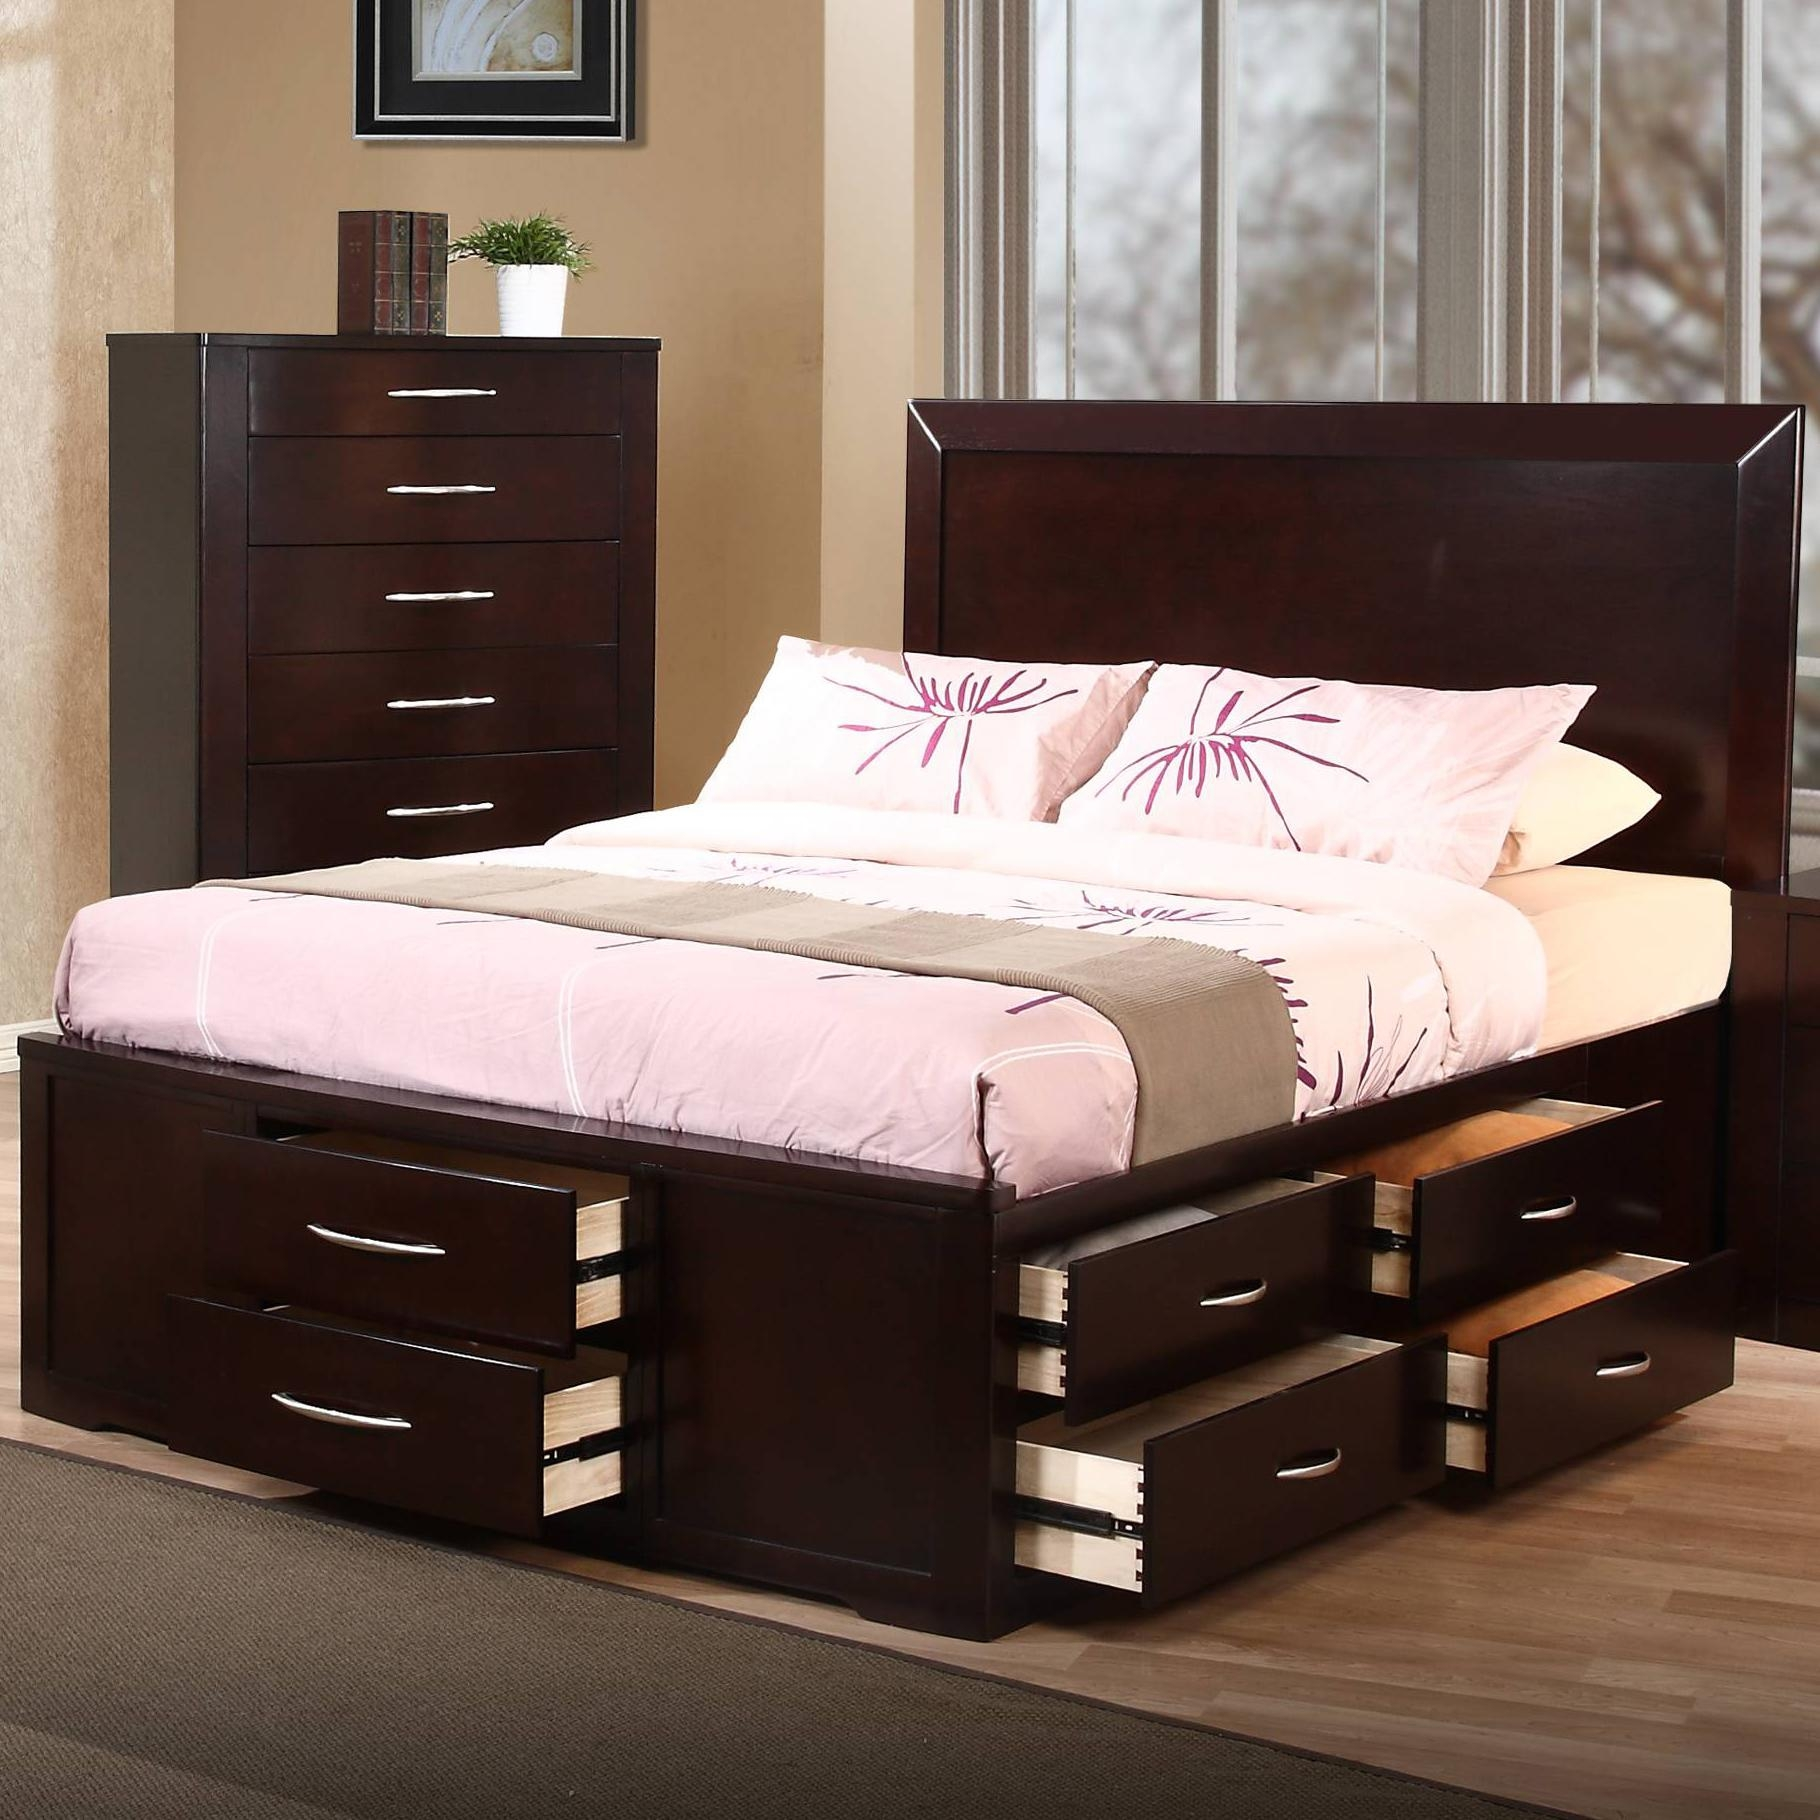 King Single Bed Frame With Drawers Underneathbedding modern high platform bed with drawers high end wooden